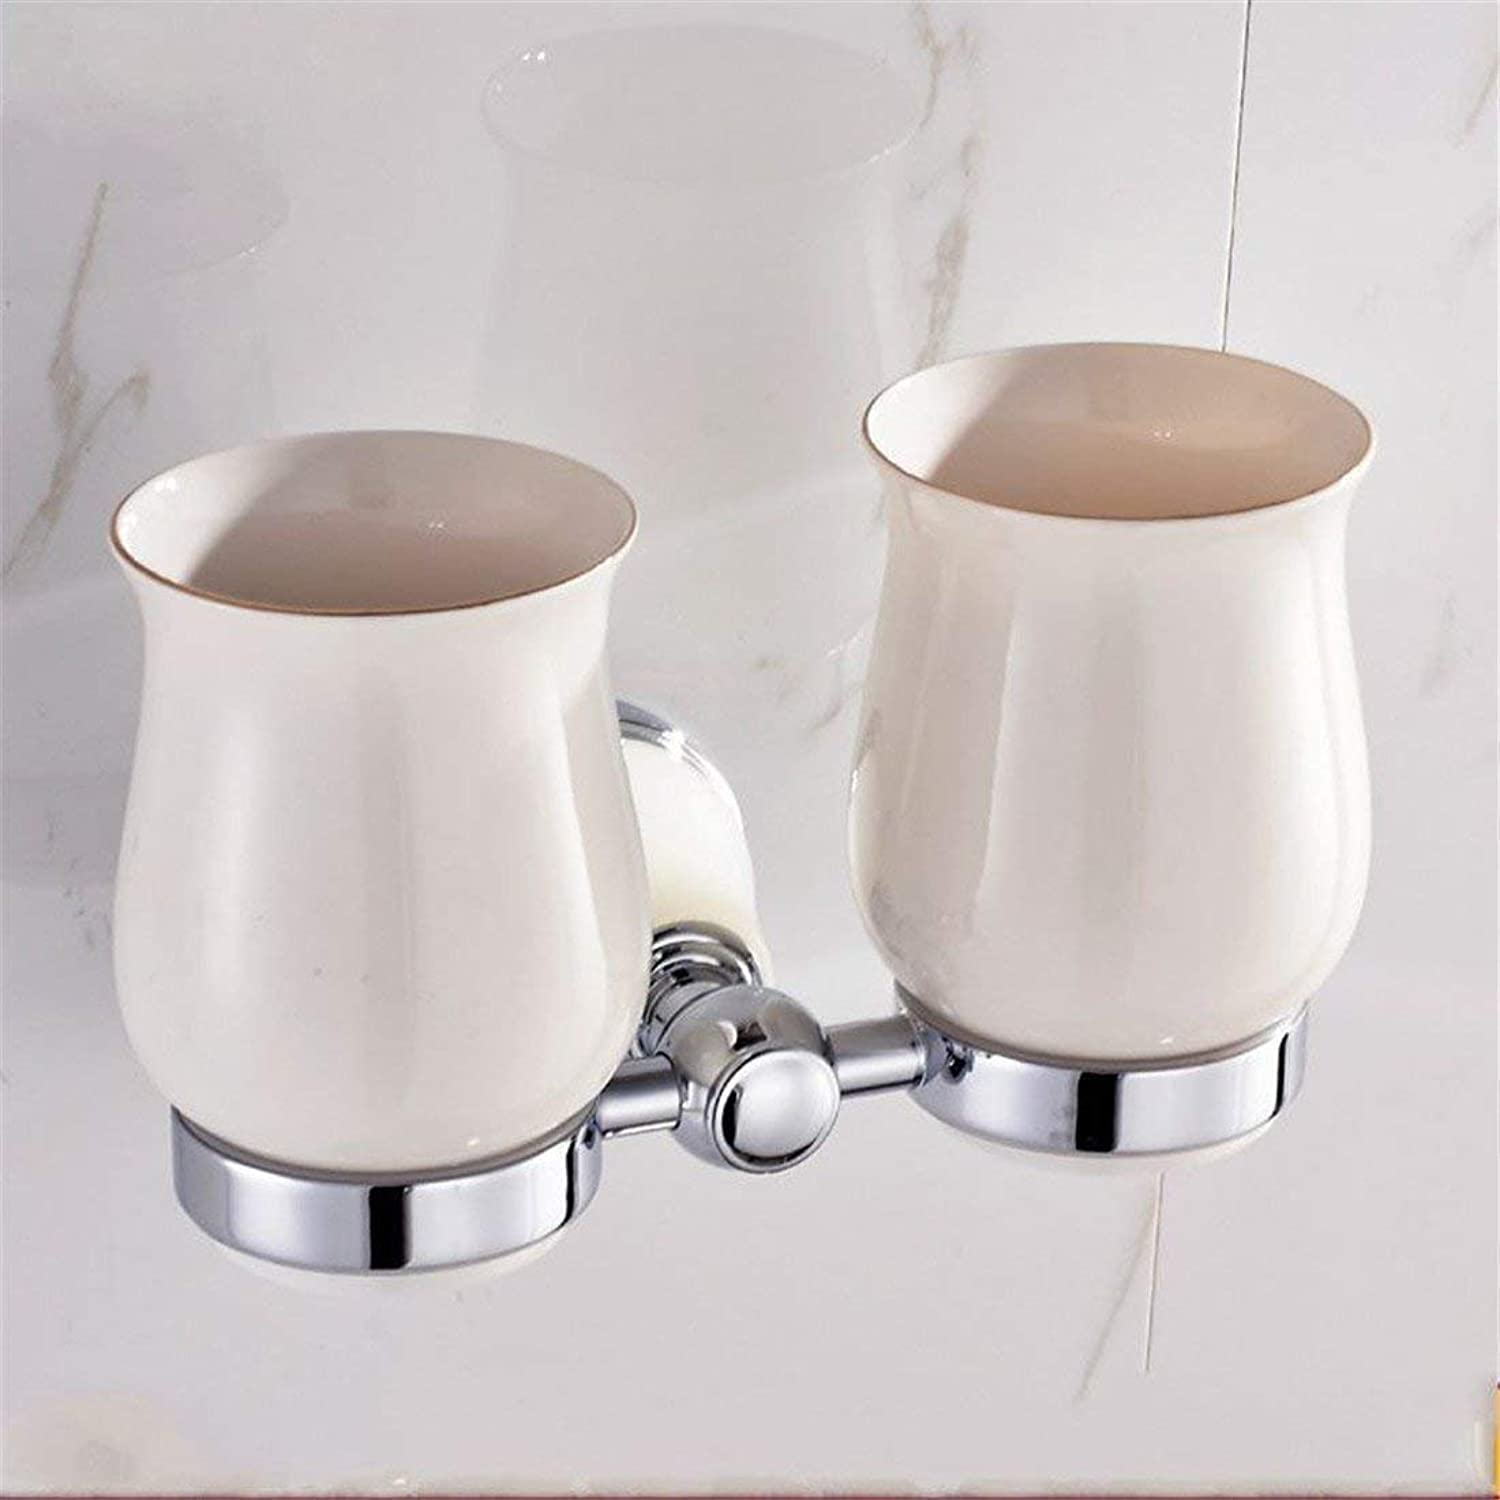 European Jade Silver Copper Set Chrome Bathroom Accessories Toilet Brush Dry-Towels,Strong soap Double Thin Cup